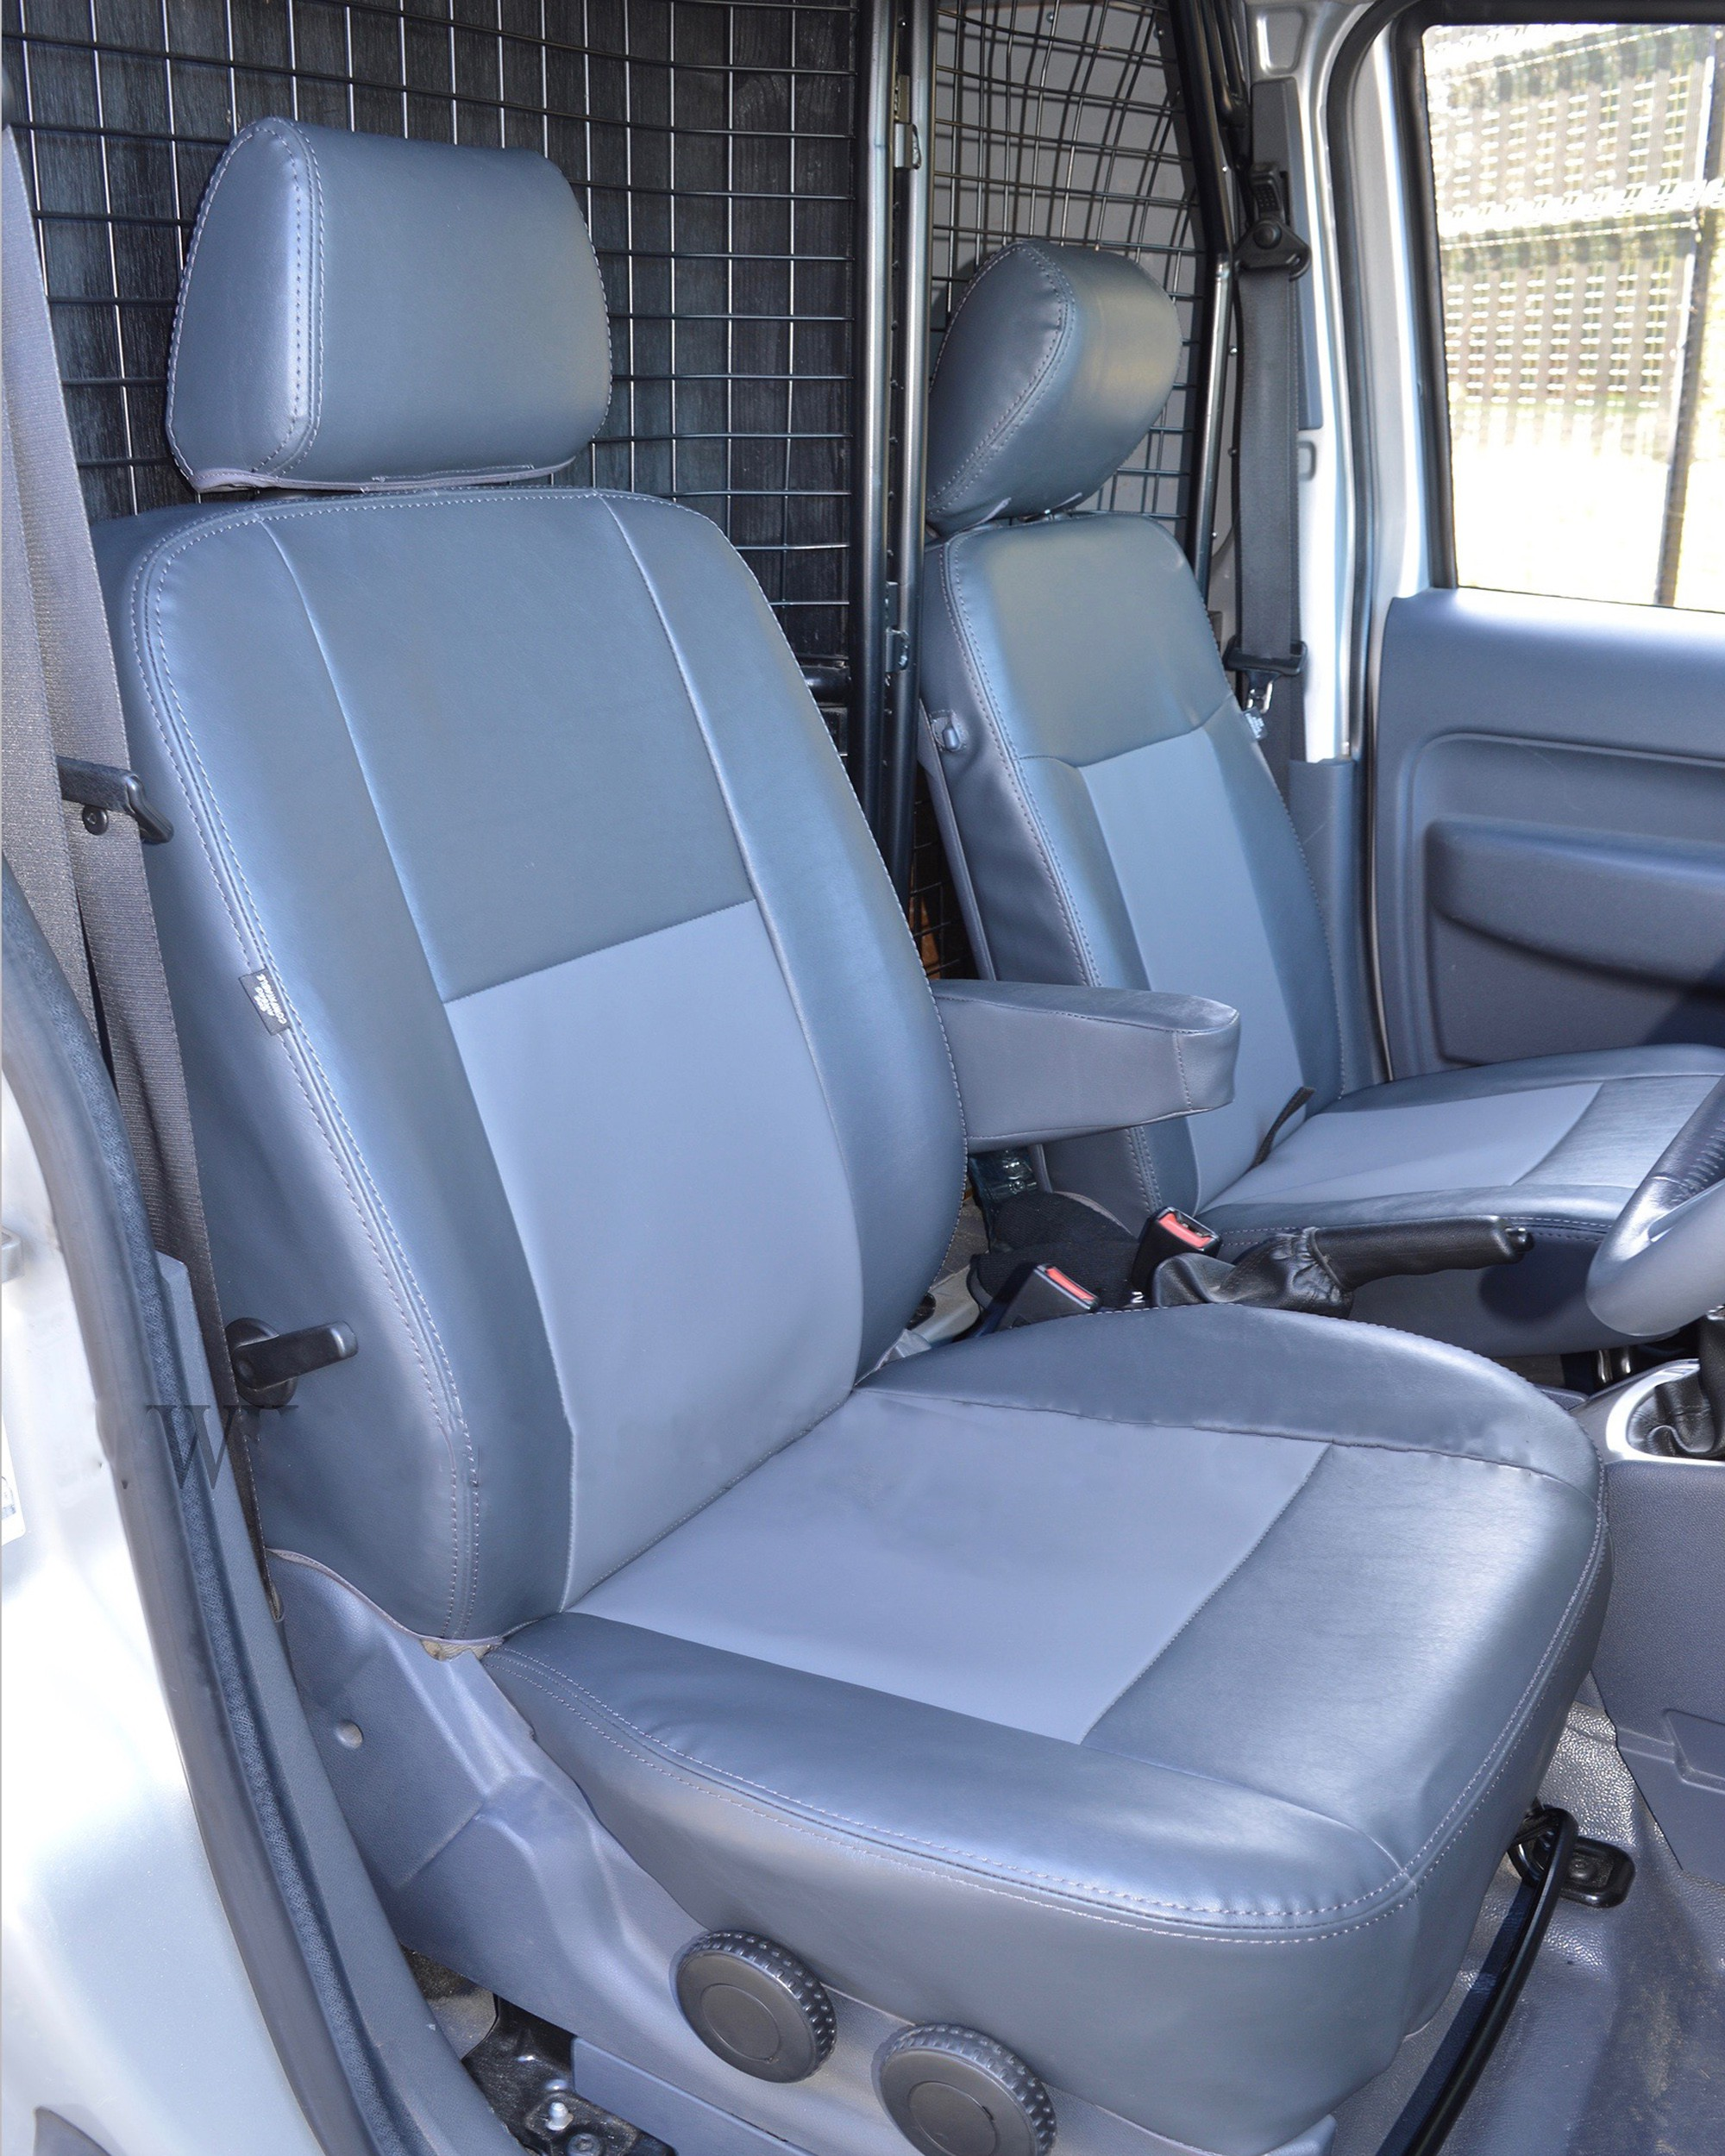 Ford Transit Connect Seat Covers - Black With Grey Insert